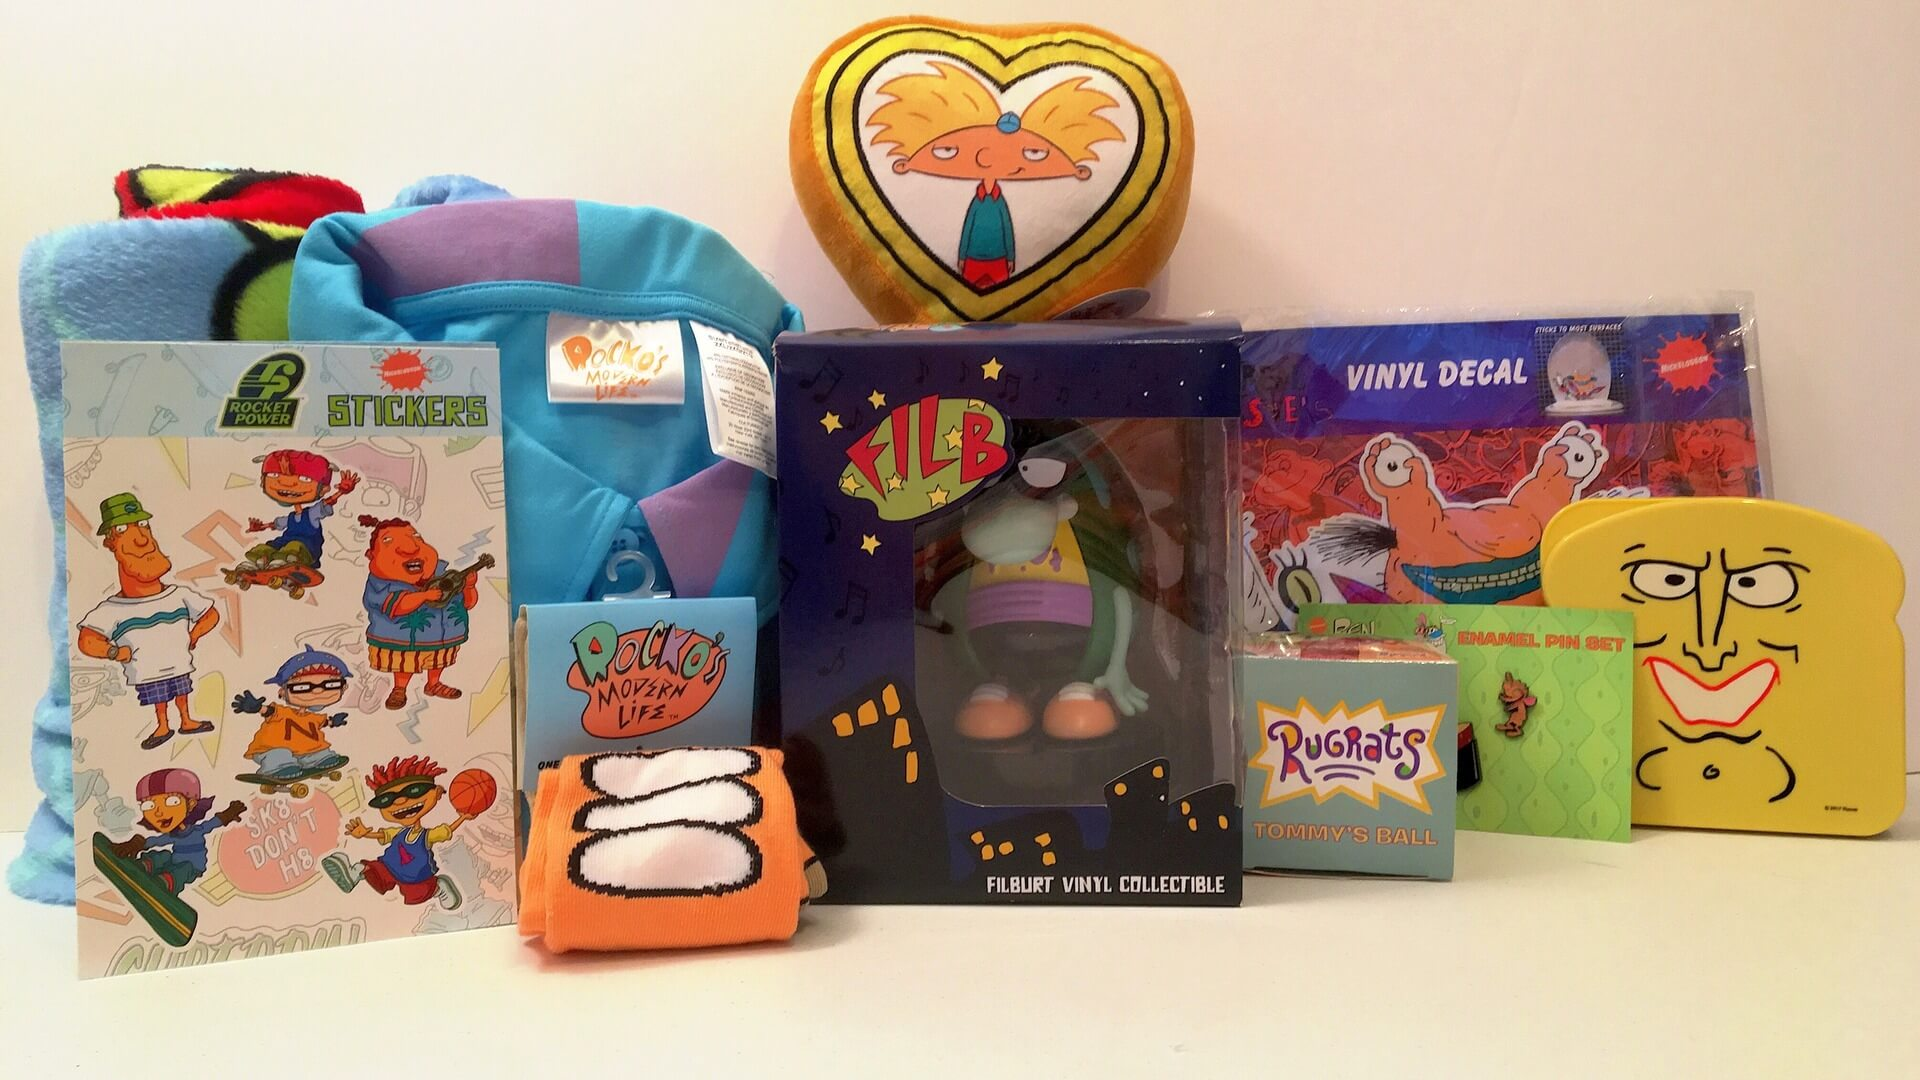 The Nick Box: Ren & Stimpy, Rocko's Modern Life & More! - Review